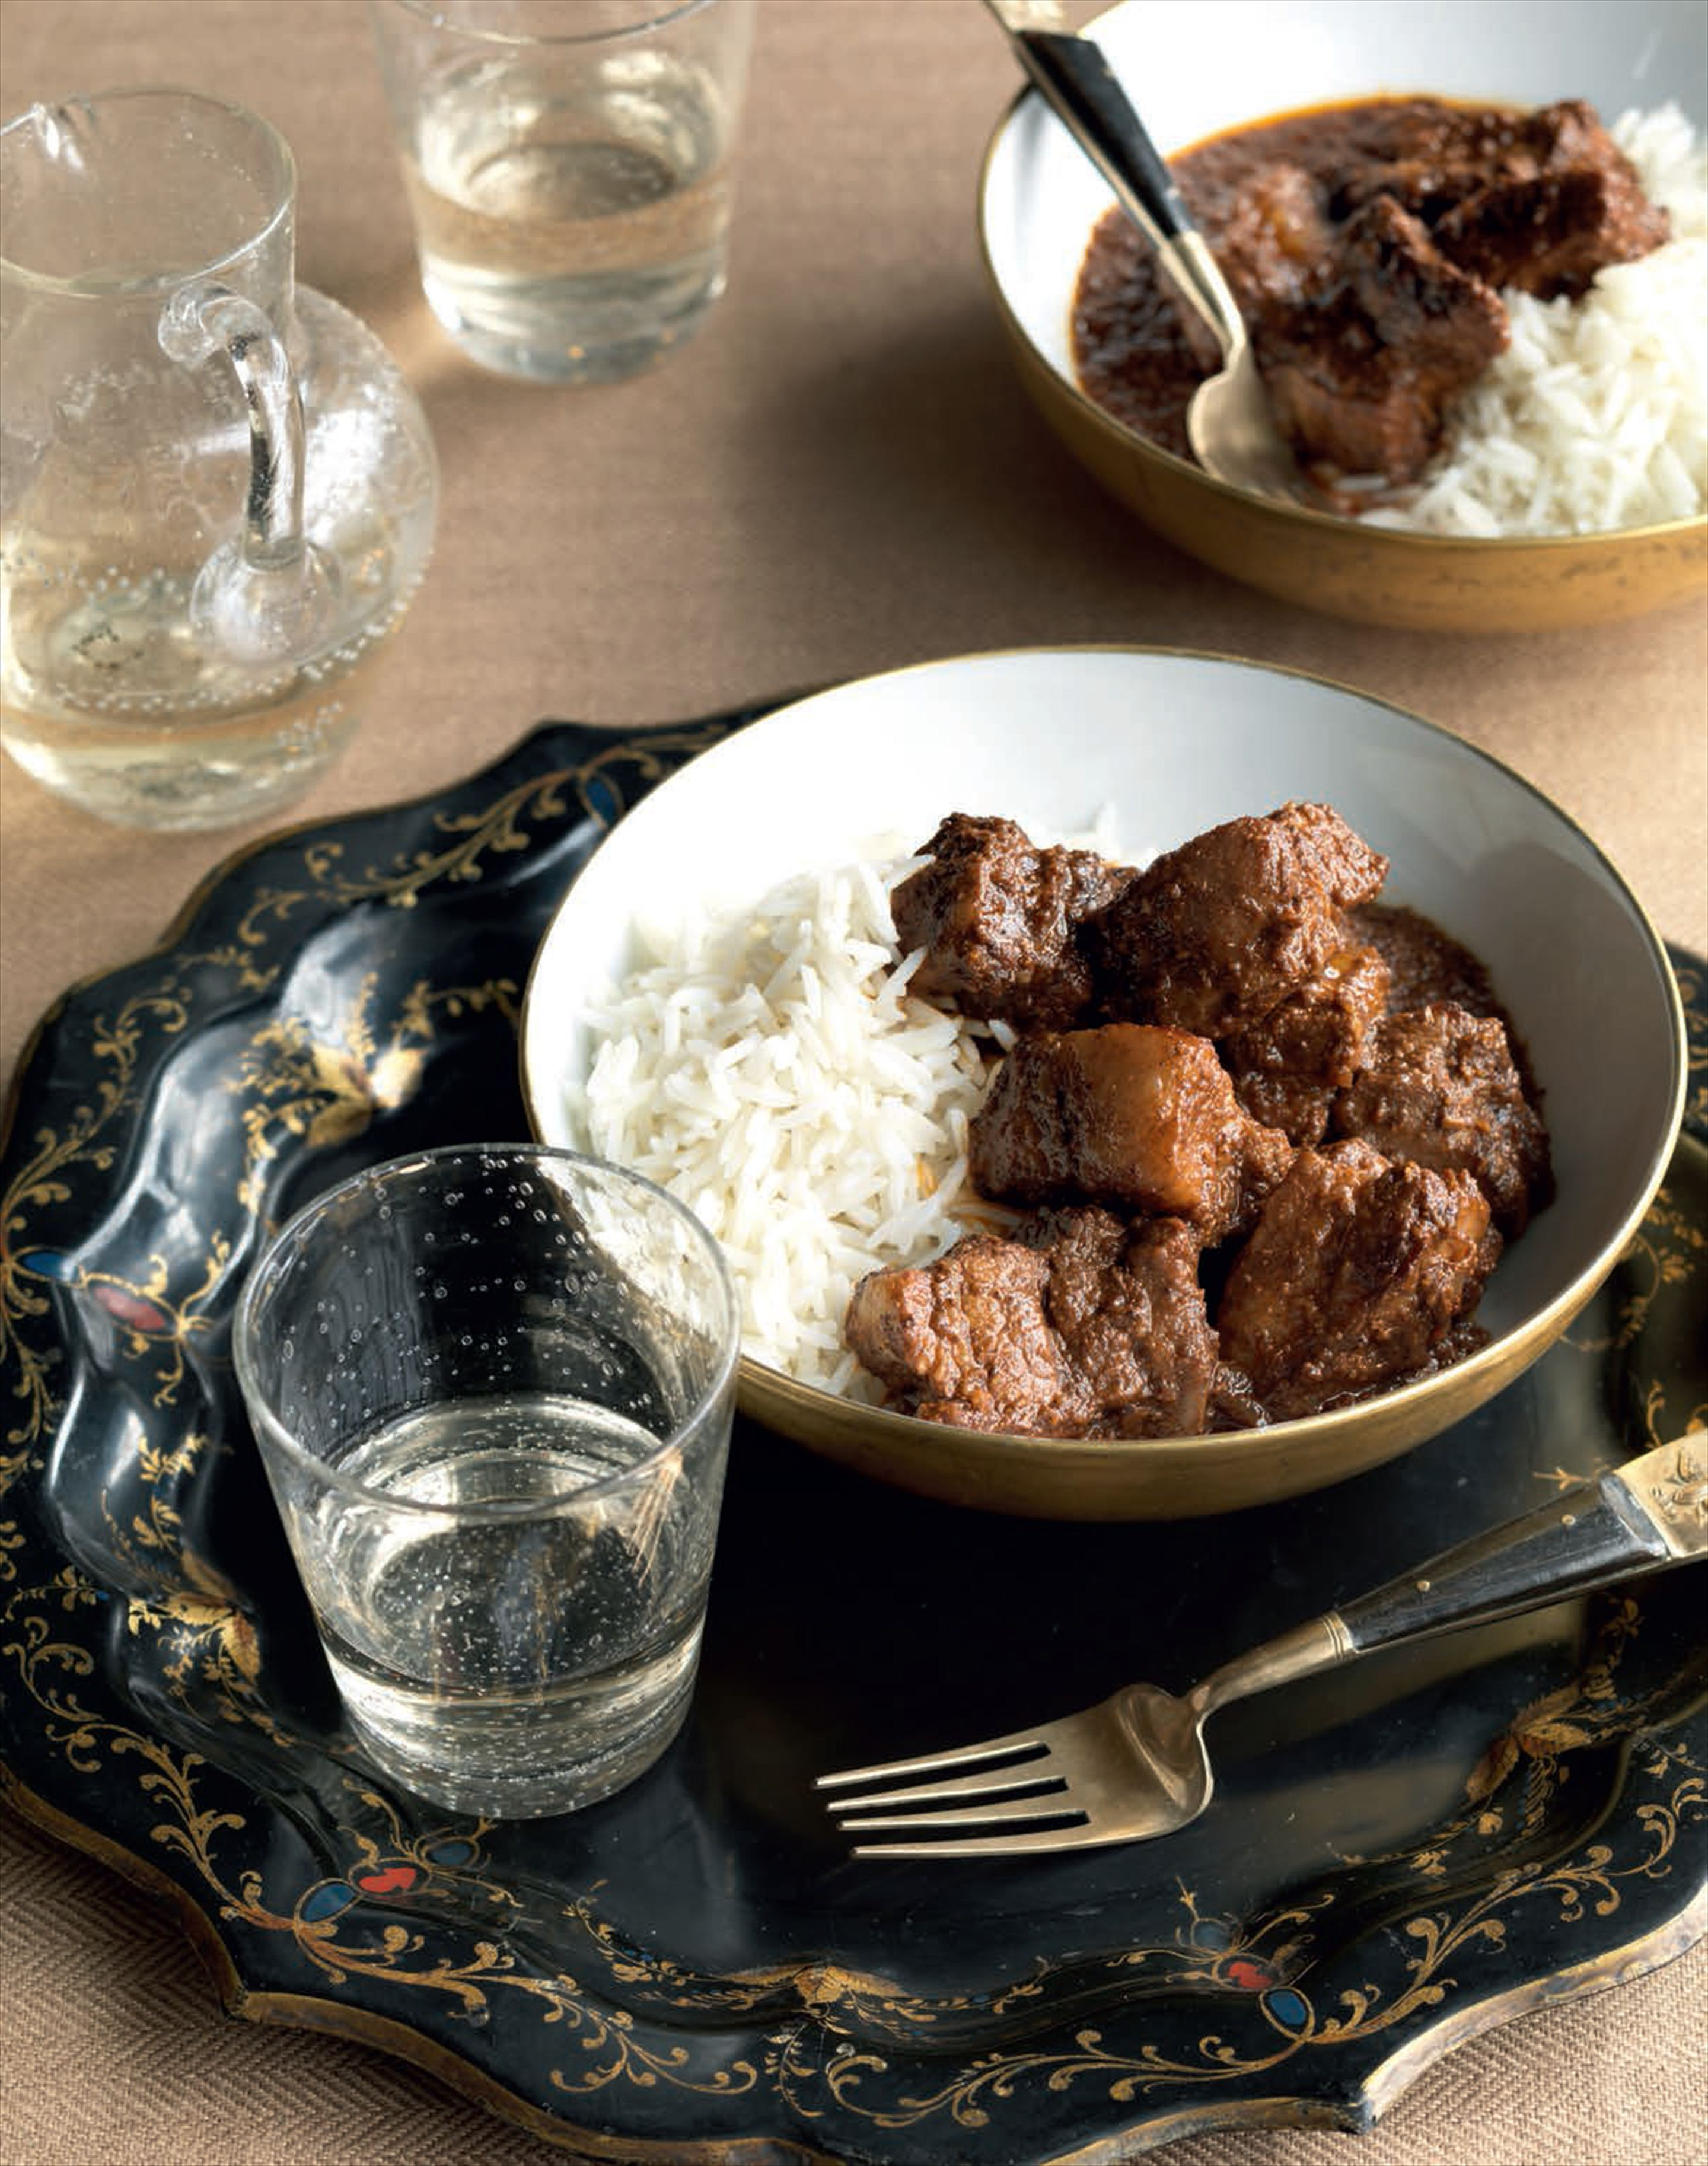 Authentic pork vindaloo